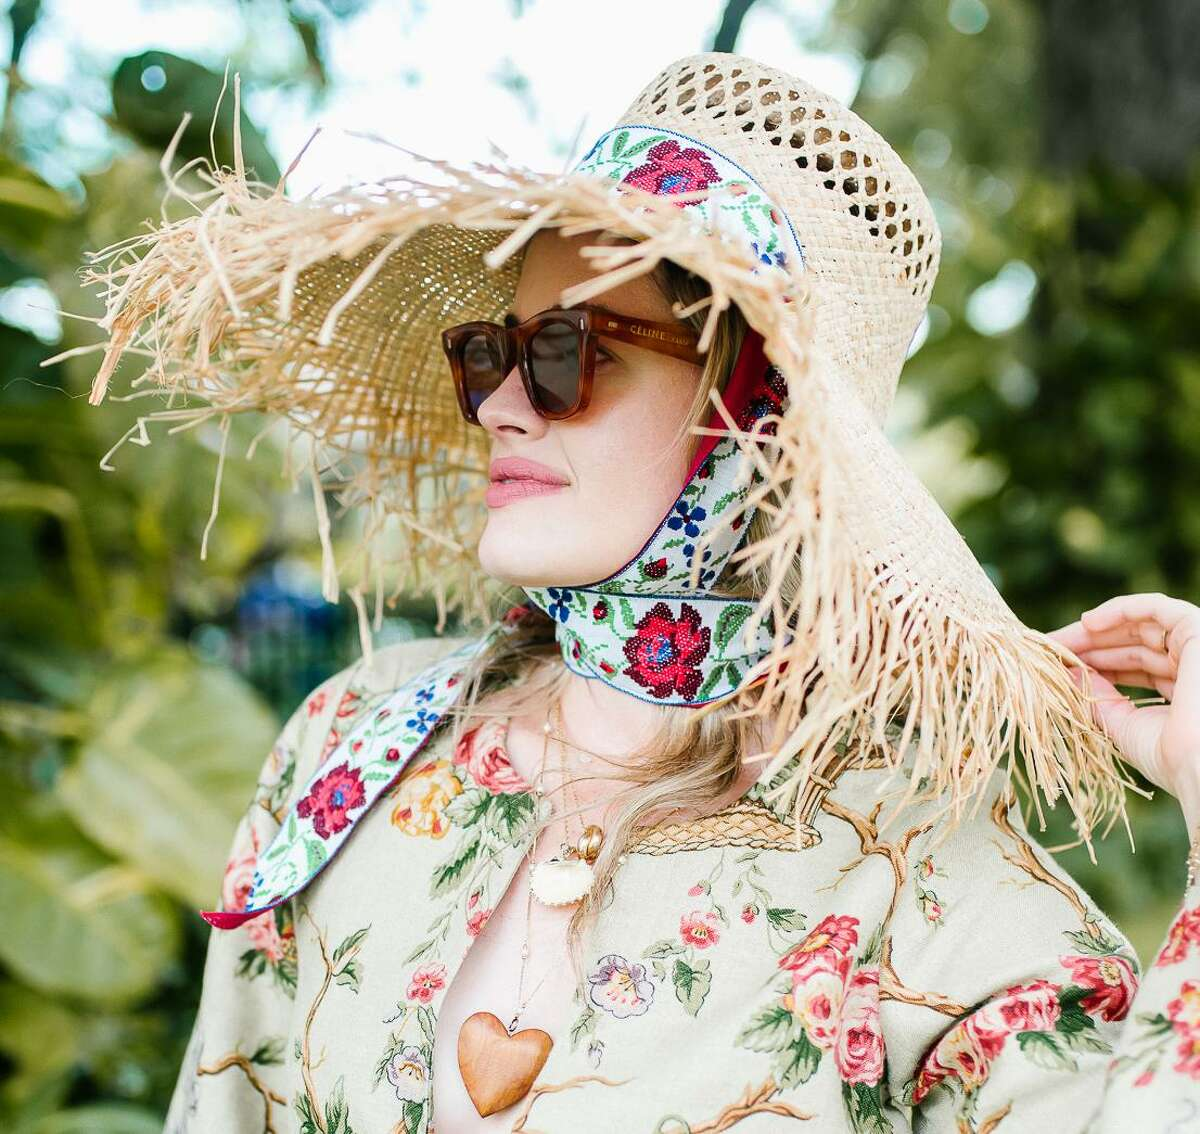 Texas native Sarah Bray models sunhats, caftans and other accessories from her eponymous fashion line, Sarah Bray Bermuda.